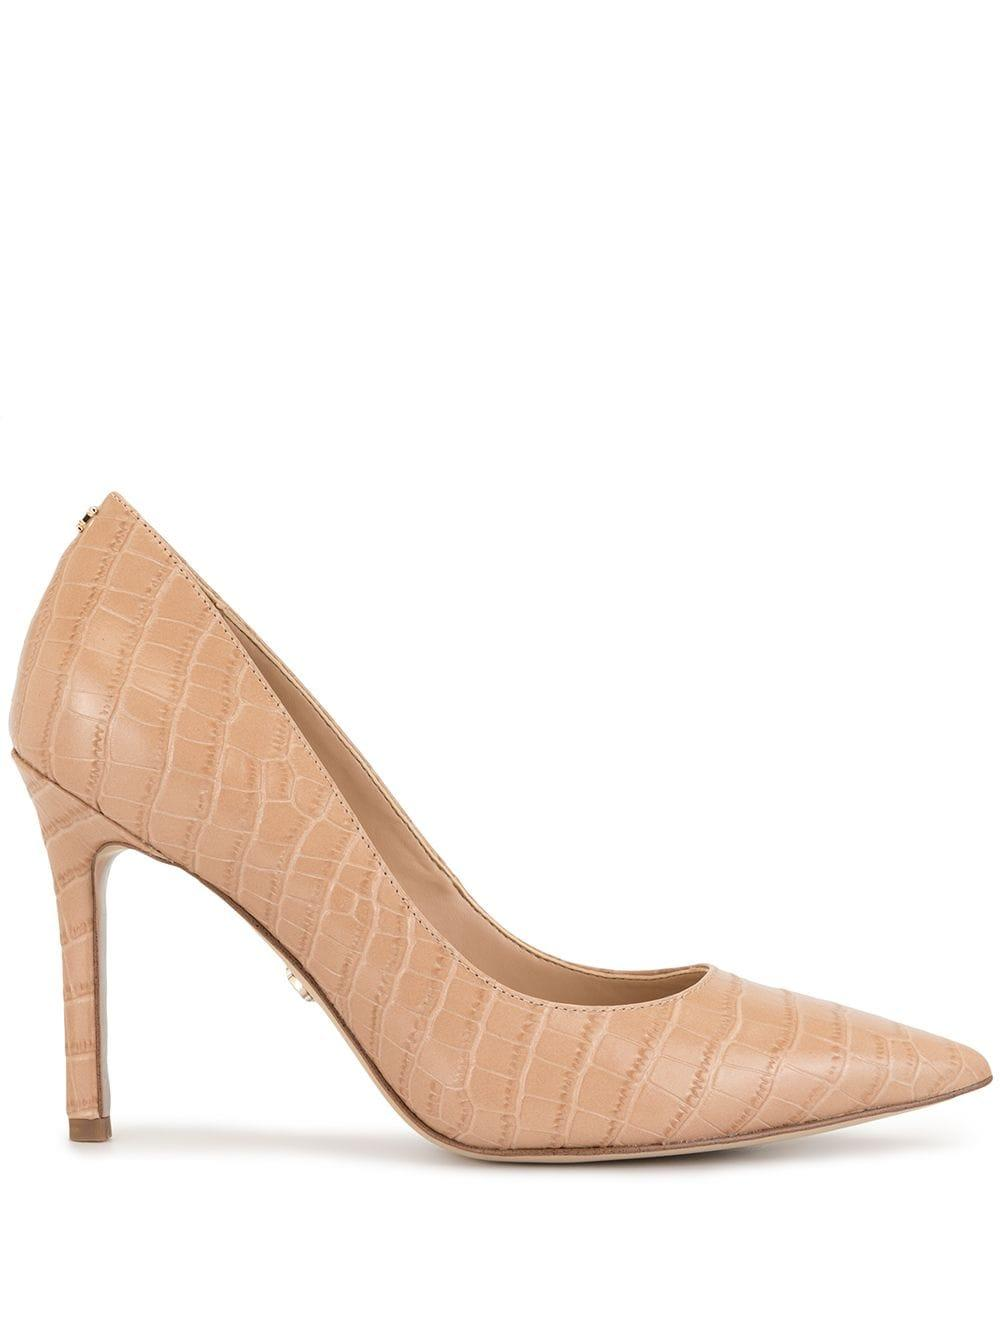 Crocodile Embossed Pump Item # HAZEL-CROC